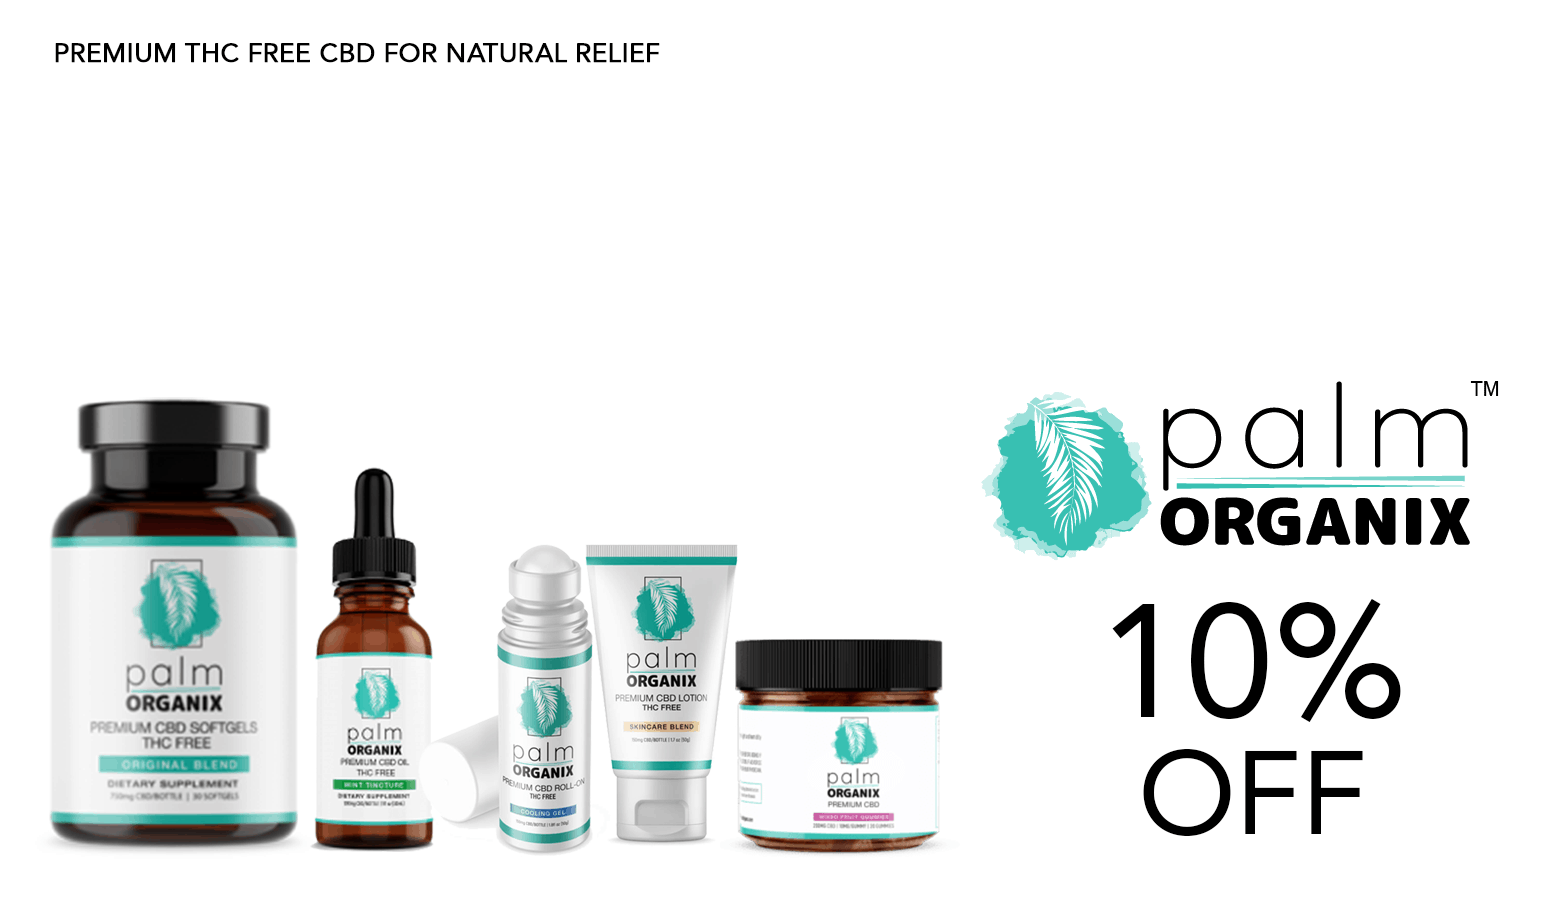 Palm Organix CBD Coupon Code Promo Discount